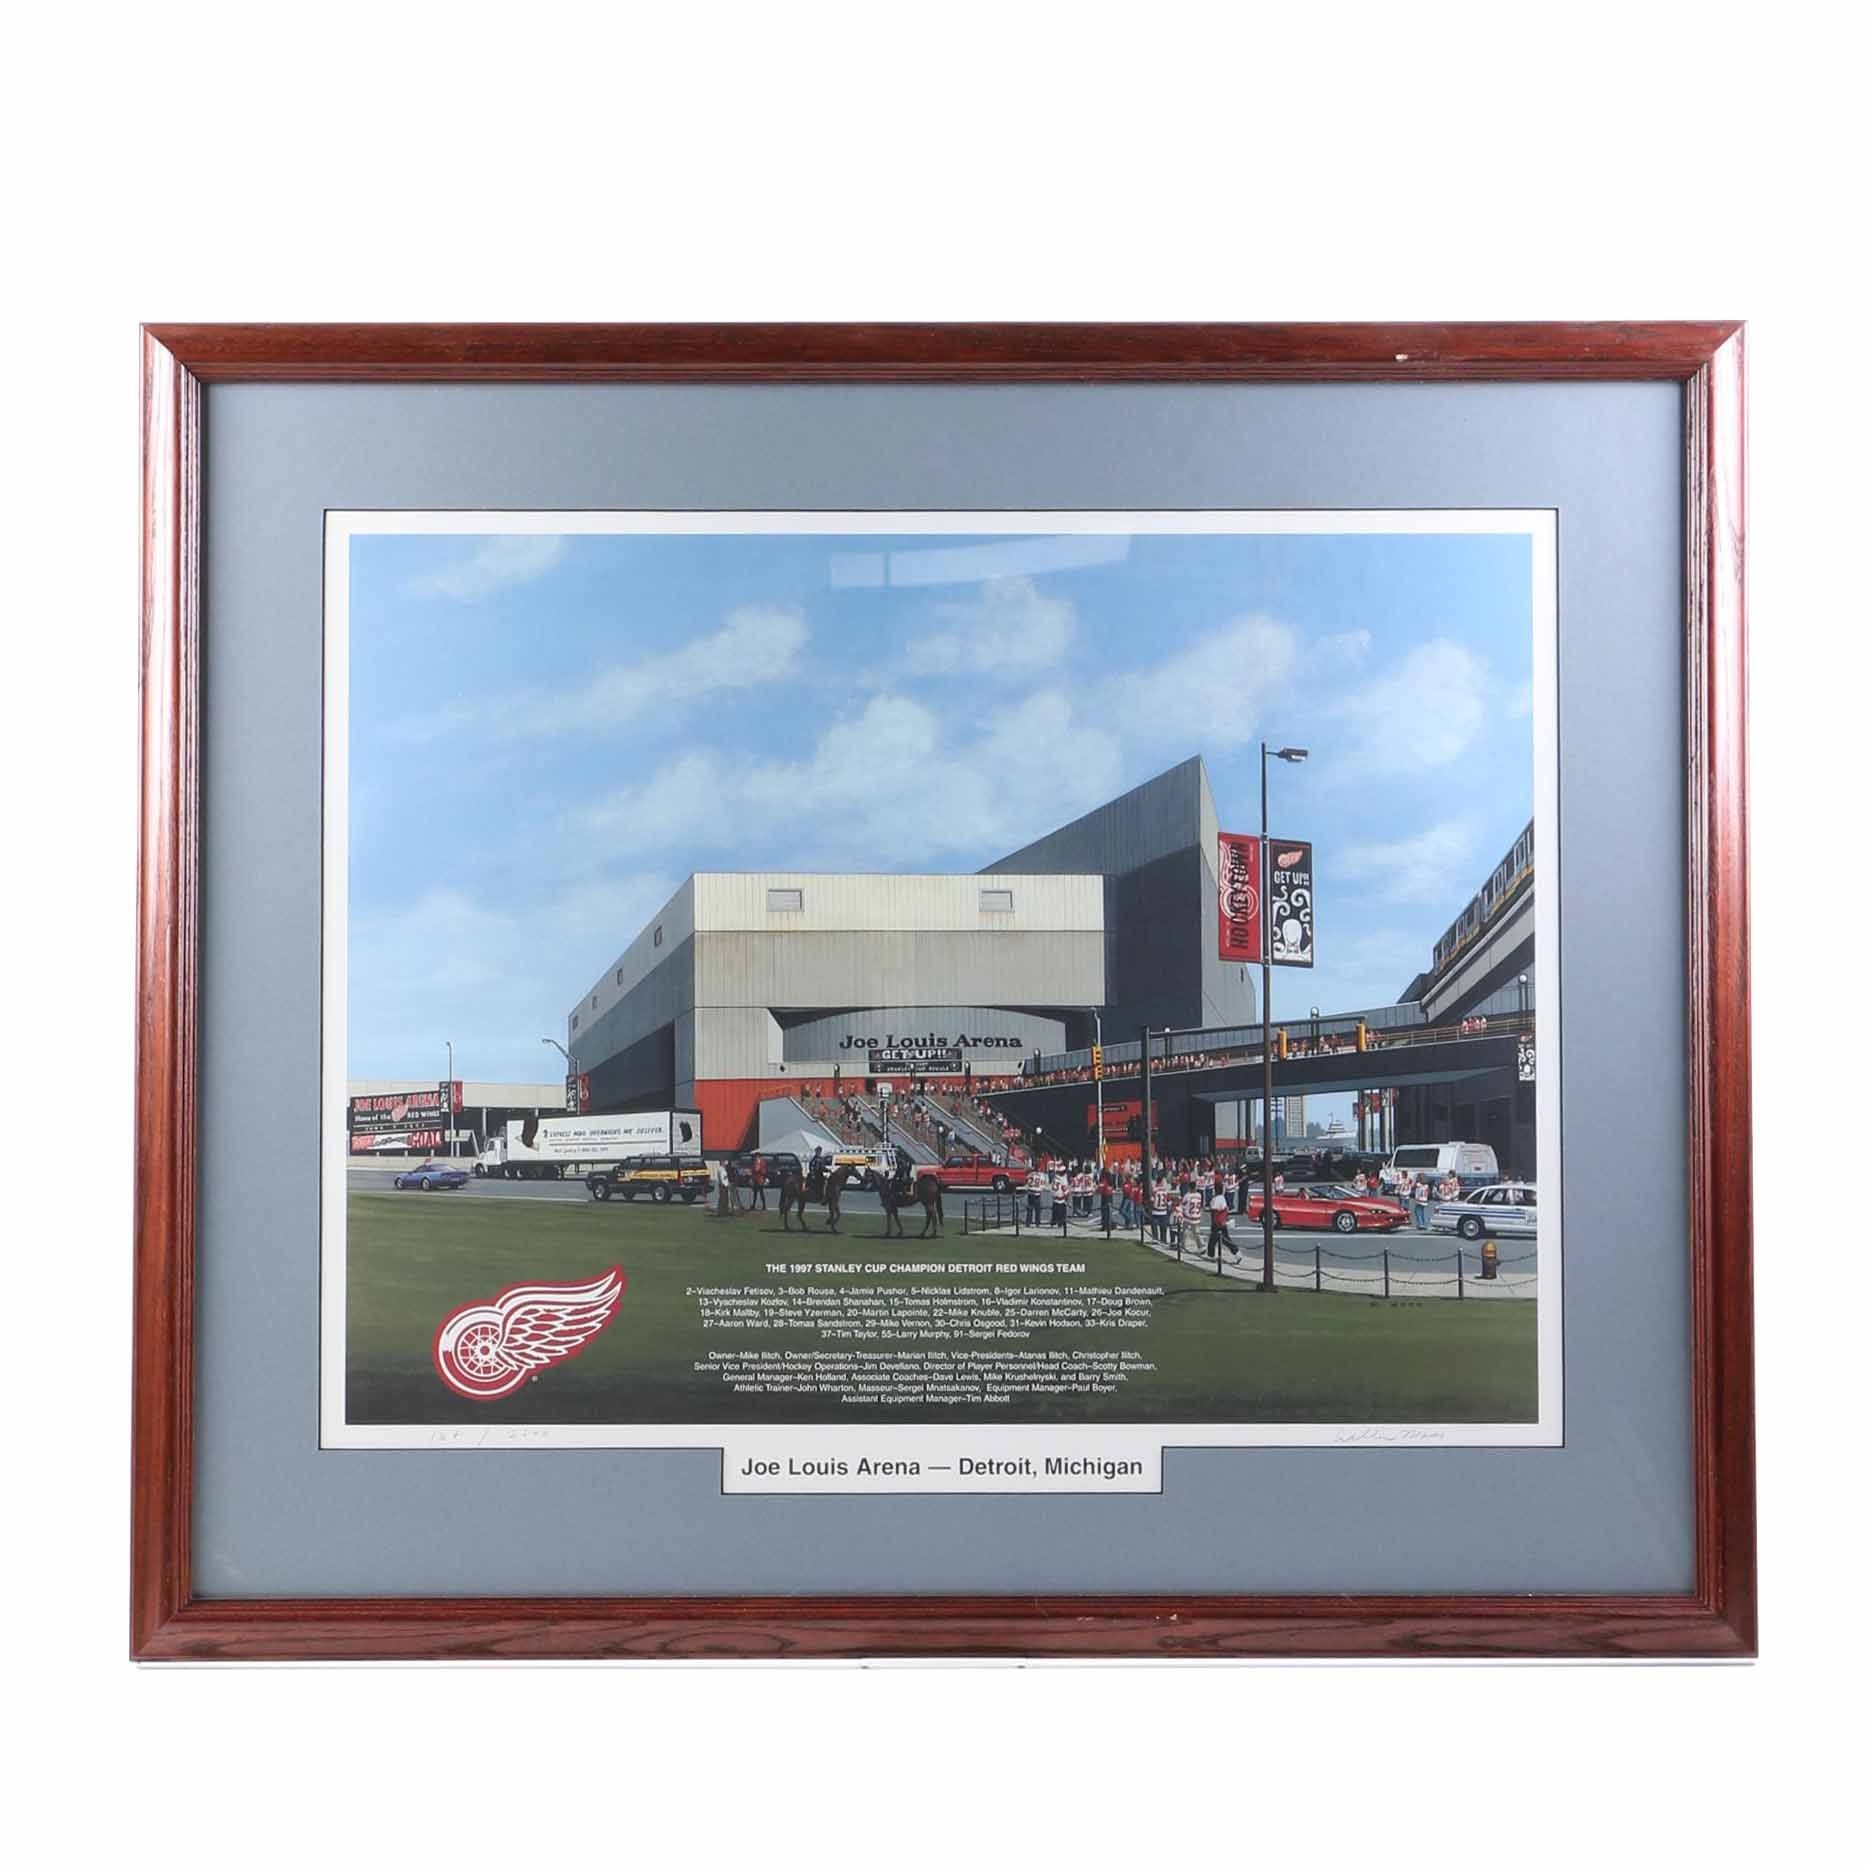 William Man Offset Lithograph of Joe Louis Arena and 1997 Stanley Cup Detroit Red Wings